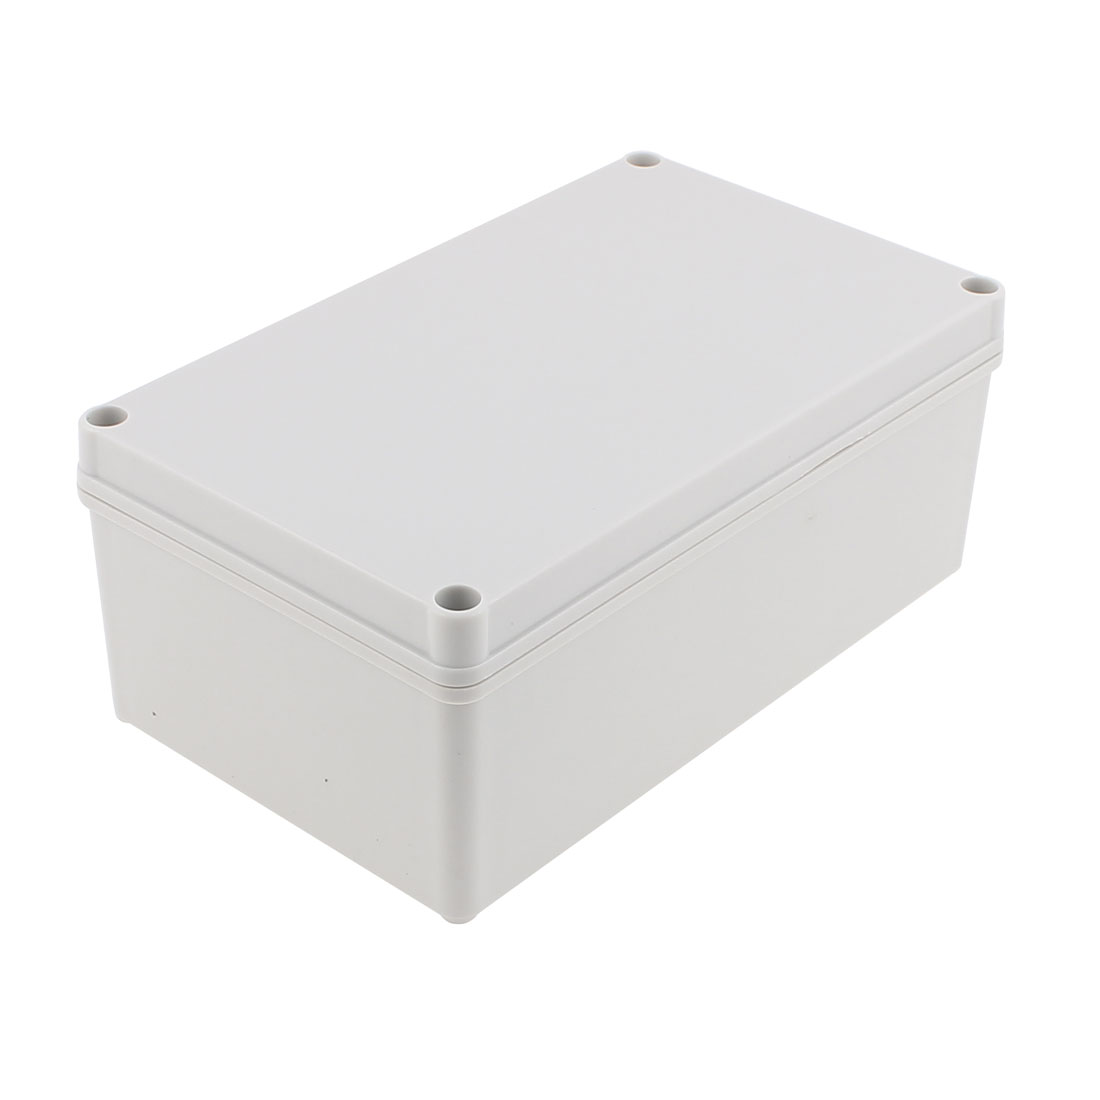 250 x 150 x 100mm Dustproof IP65 Junction Box Terminal Connecting Box Enclosure